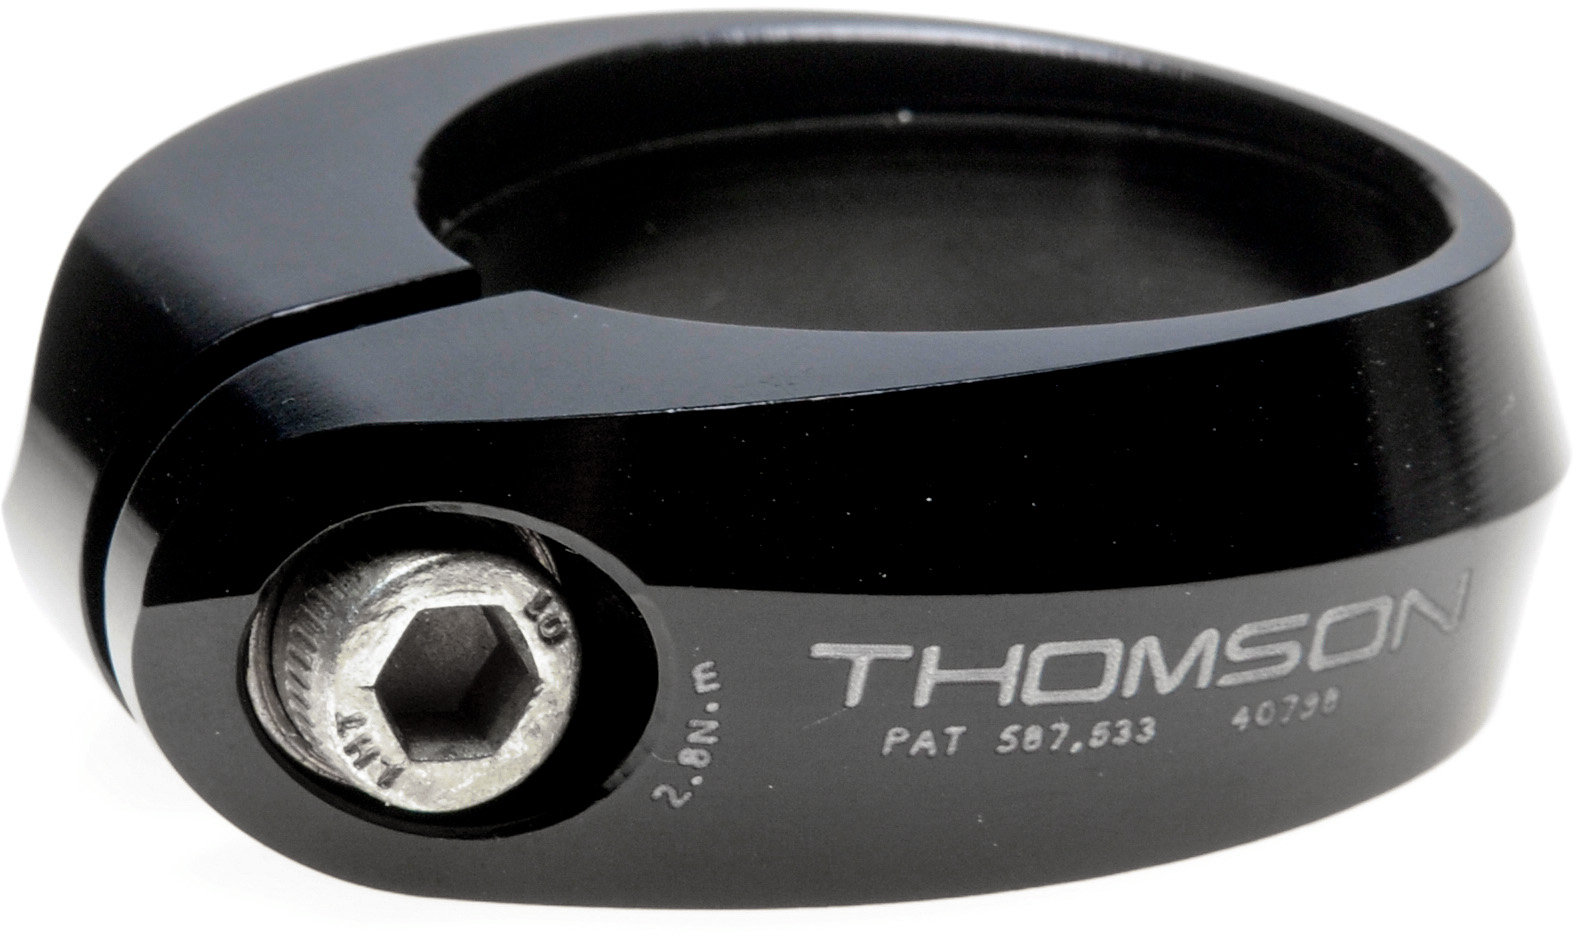 Thomson Sadelklemme | Seat Clamp